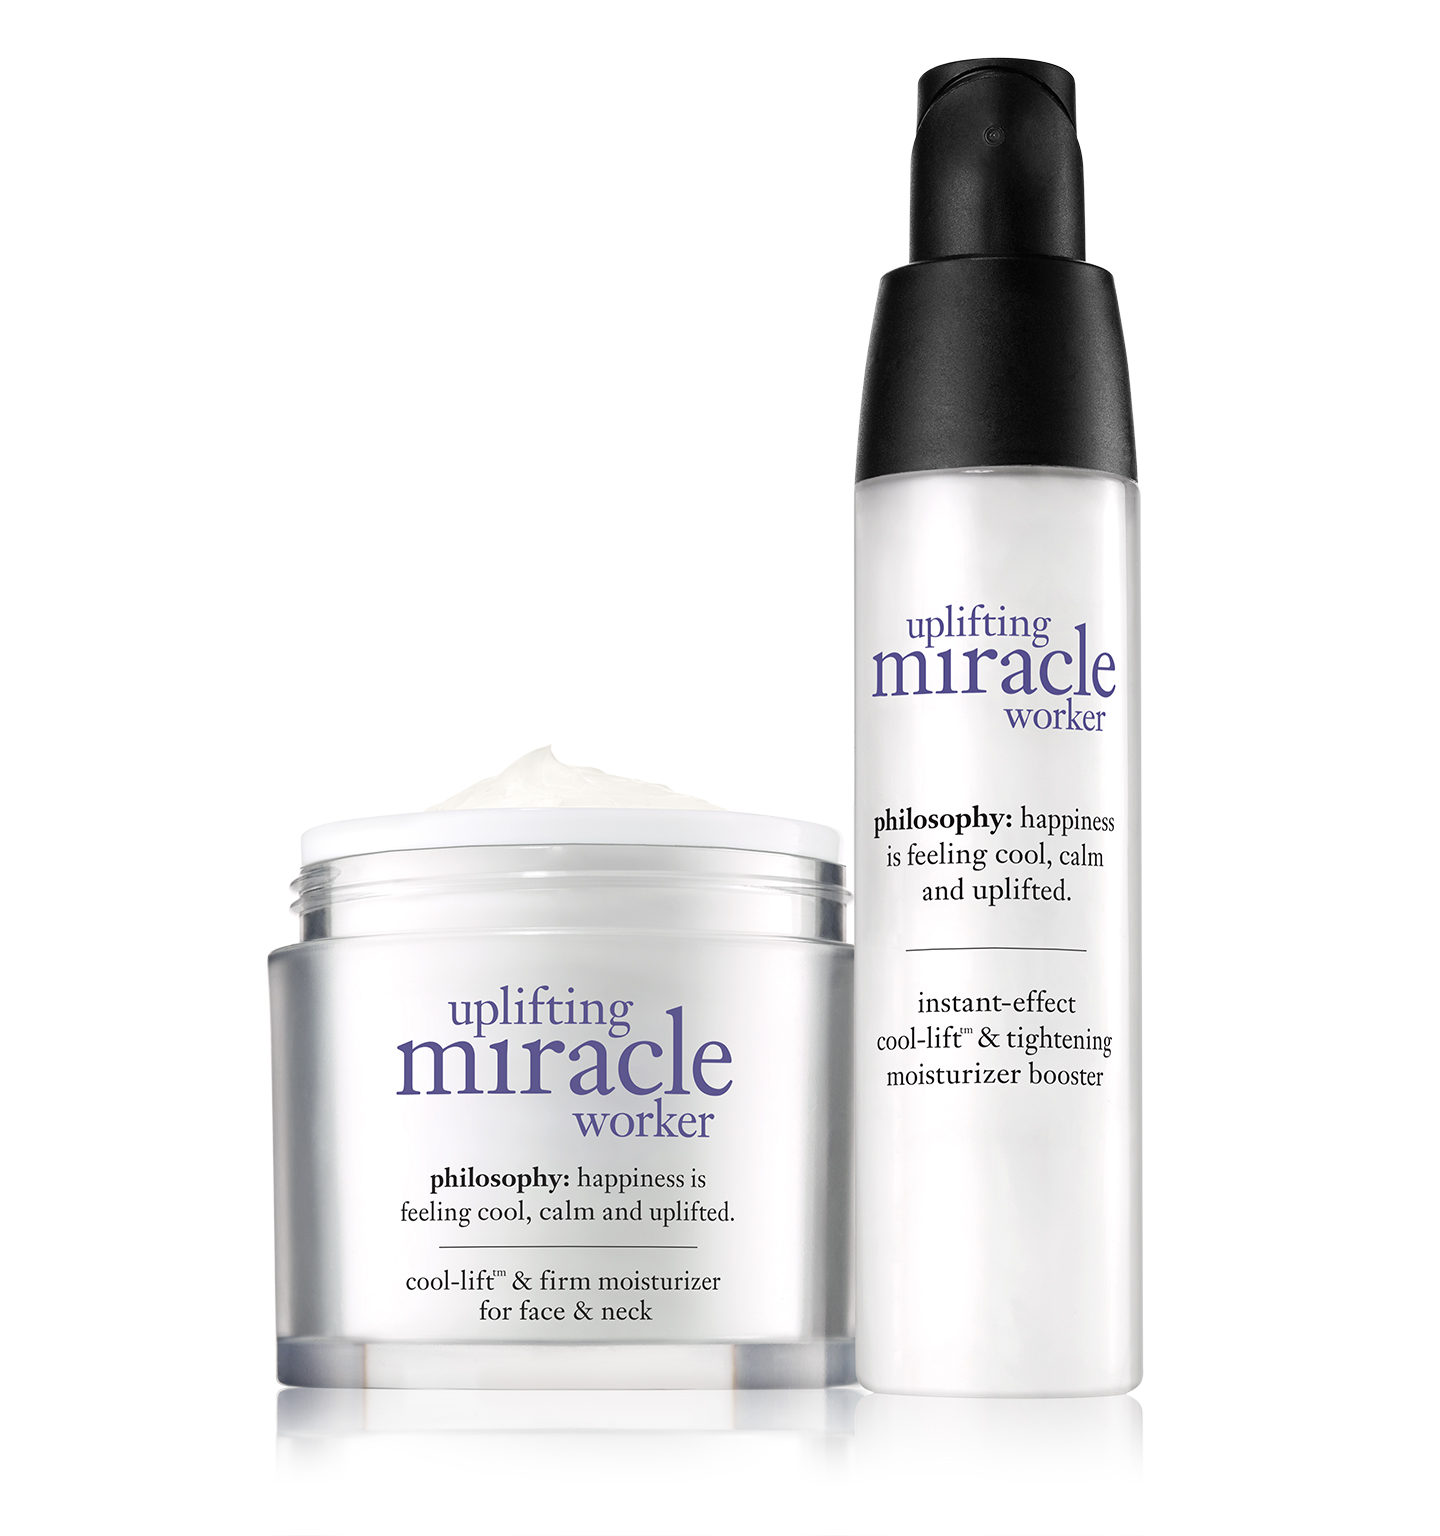 philosophy, uplifting miracle worker face duo